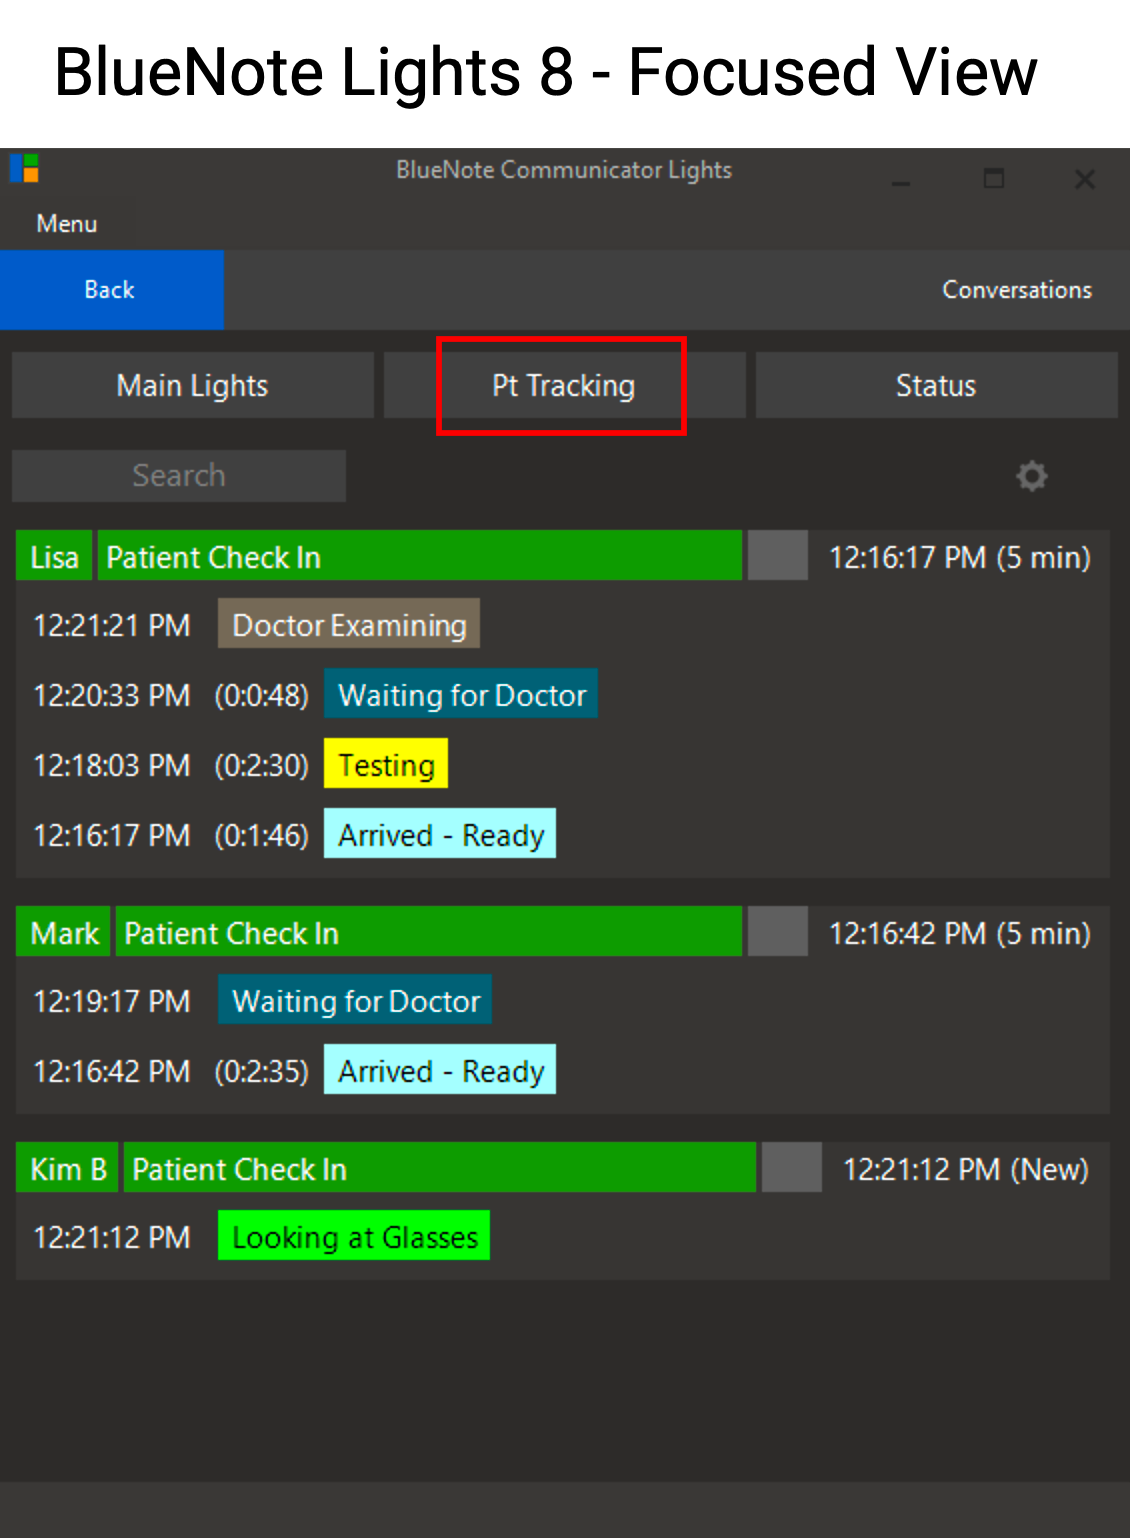 With a 120 light capacity, and multiple user views, BlueNotes allow each user to see events and tasks organized in a way that makes the most sense.